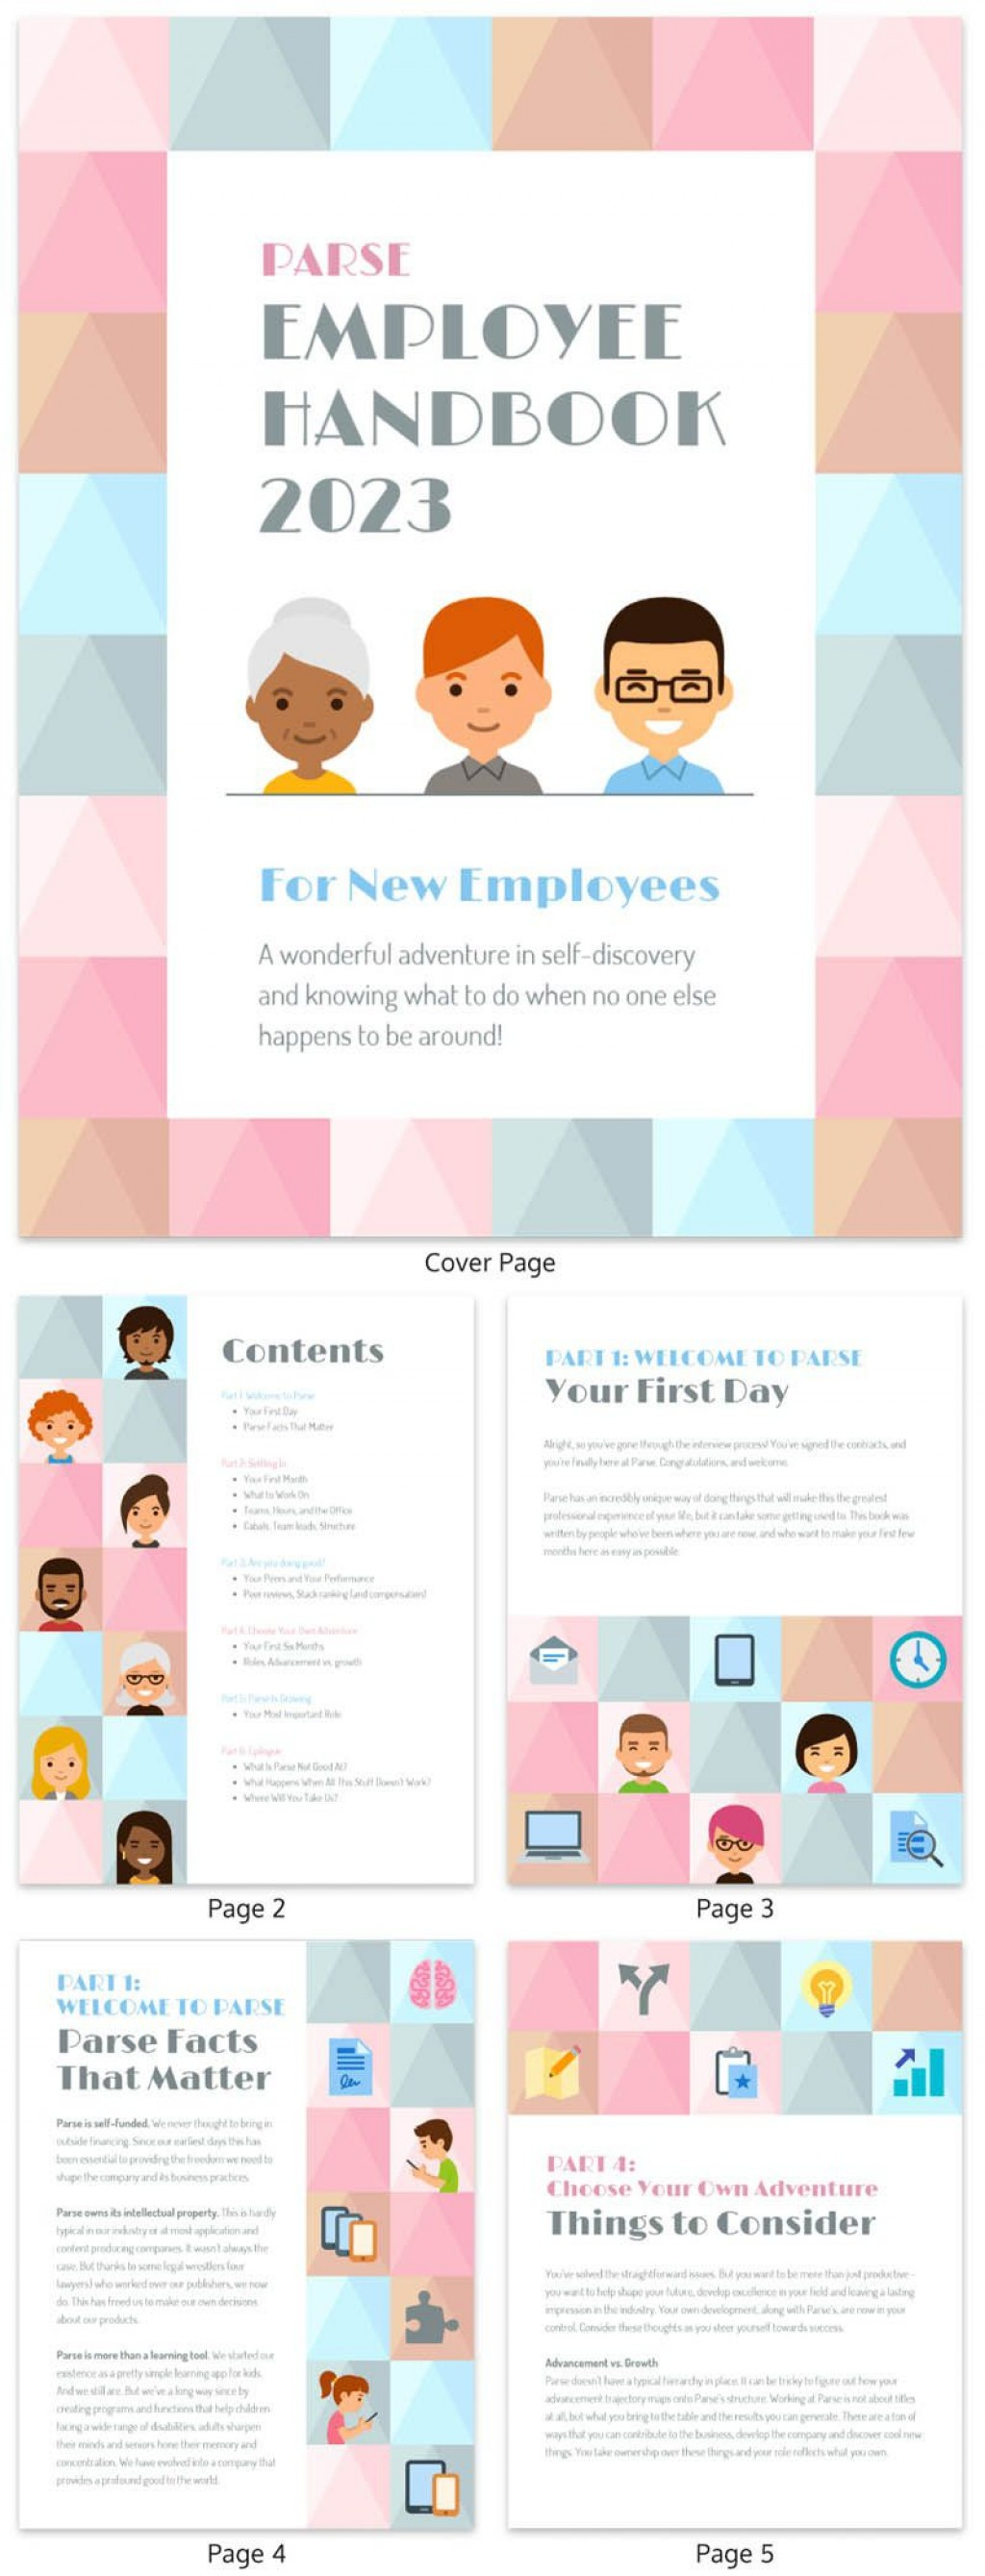 009 Unique Employee Handbook Template Free Example  Restaurant Download Induction Manual Sample In SingaporeLarge